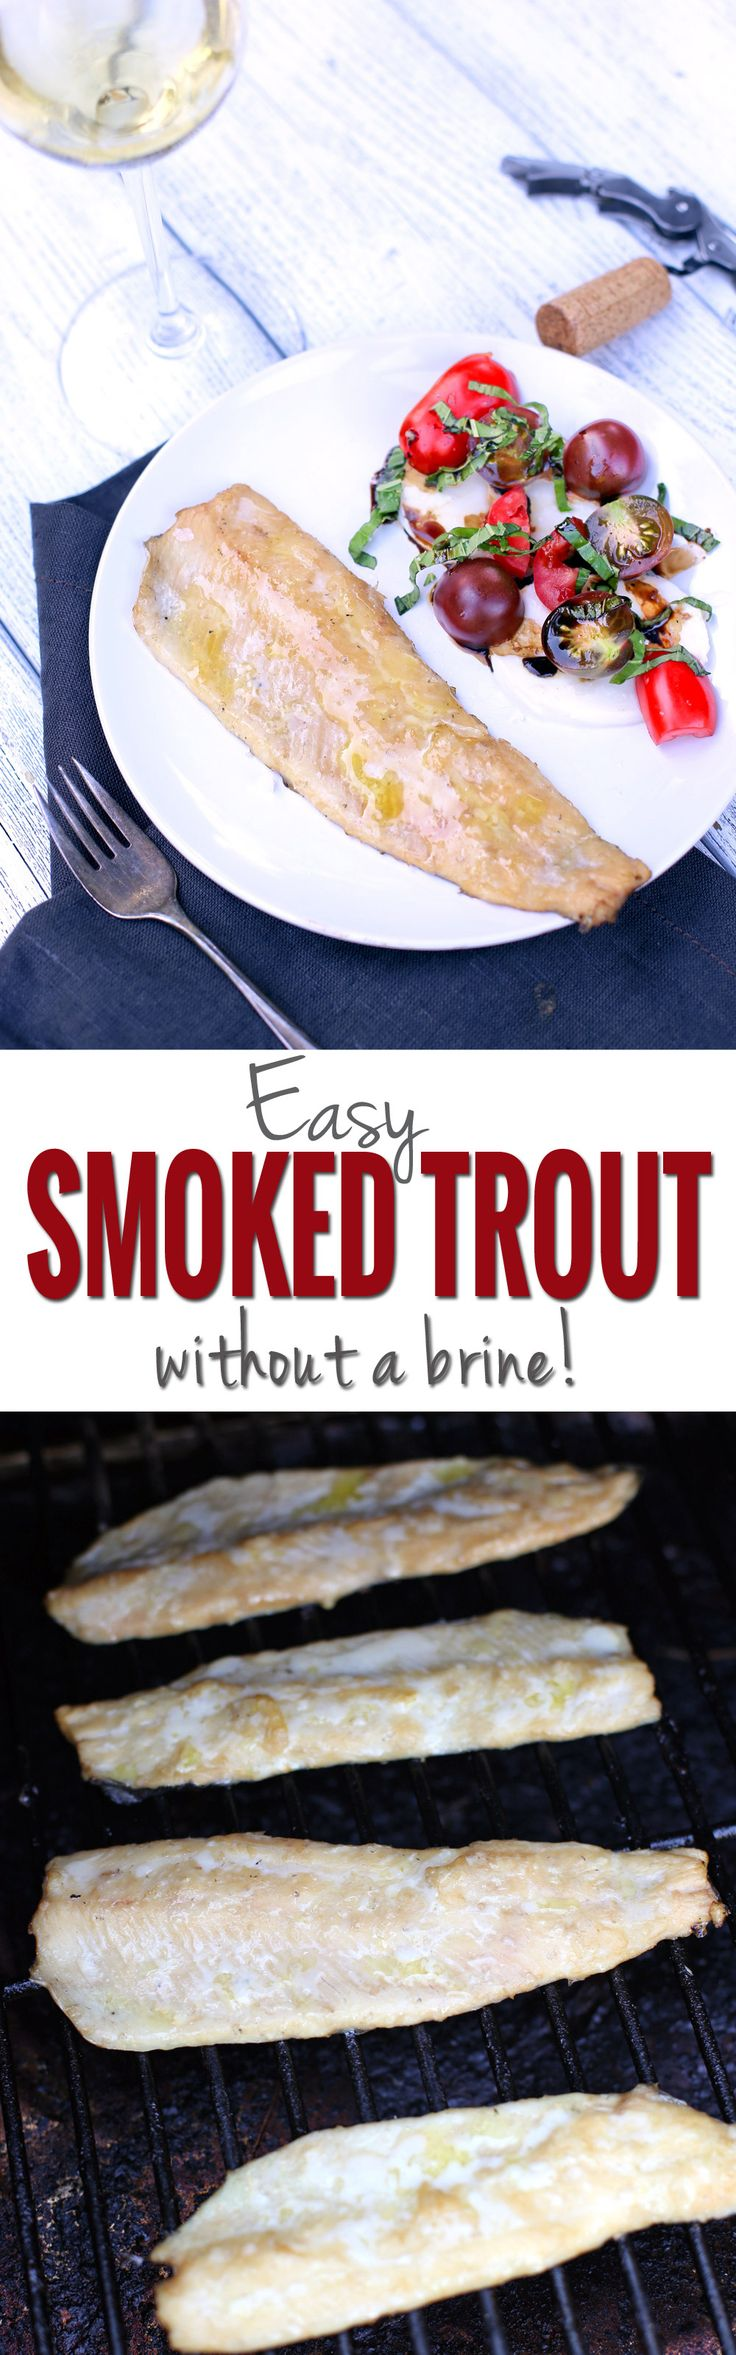 how to make smoked salmon on a traeger grill